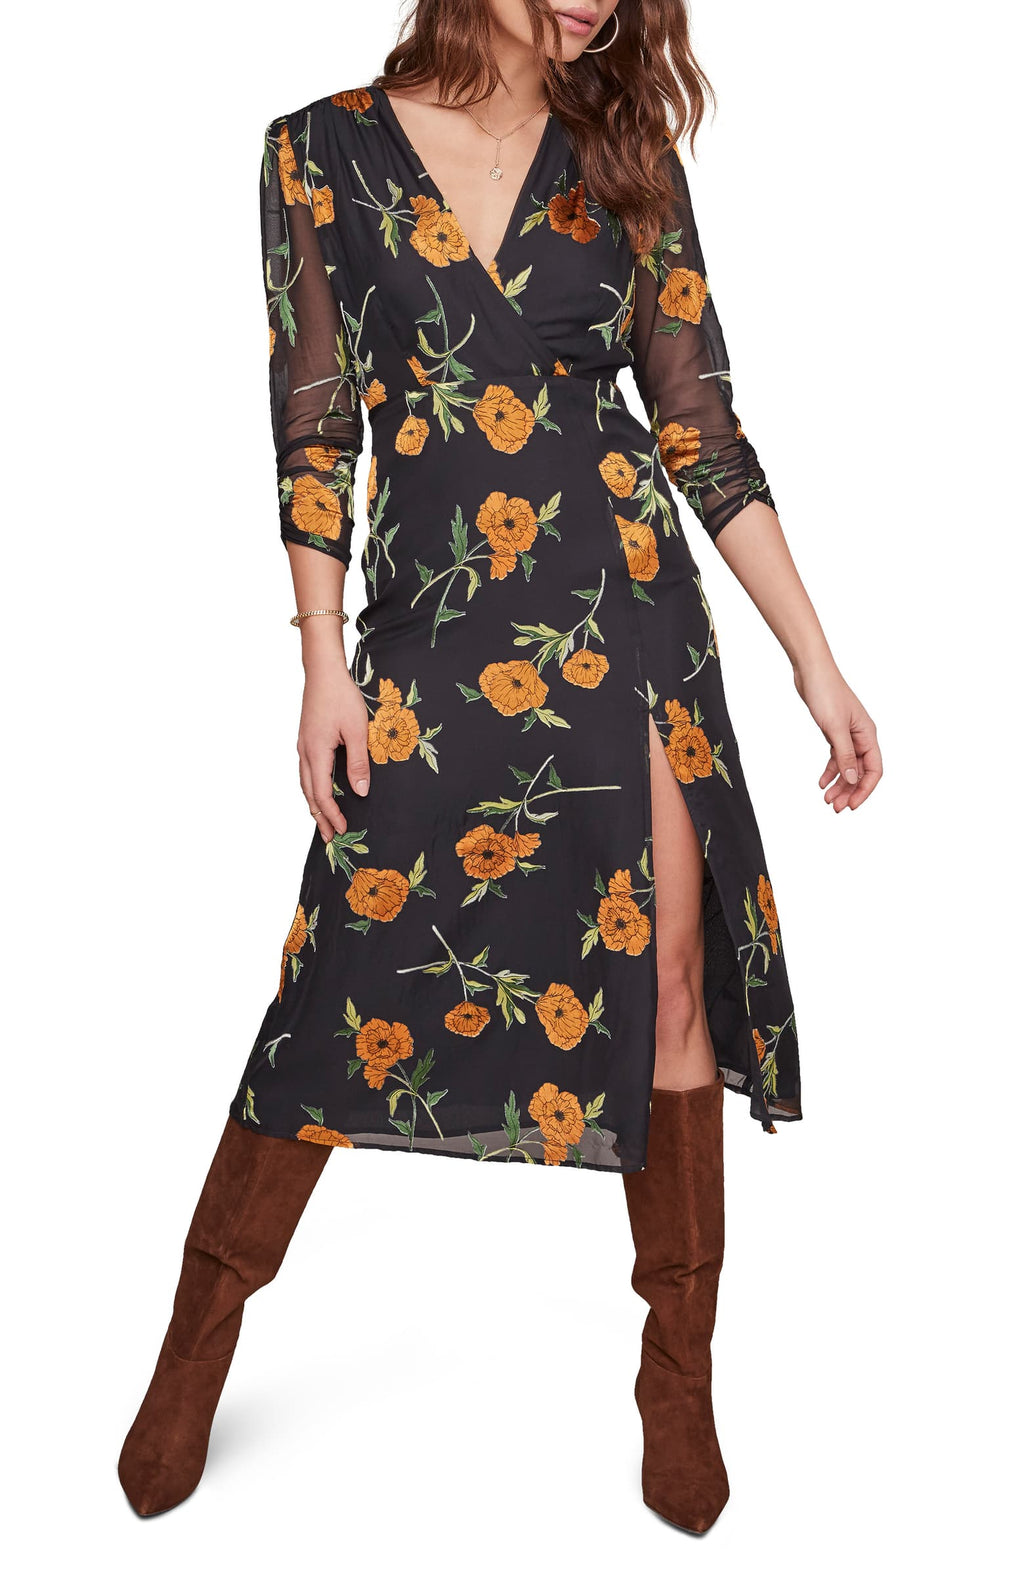 Joni Floral Midi Dress - Metallic Orange Blossom